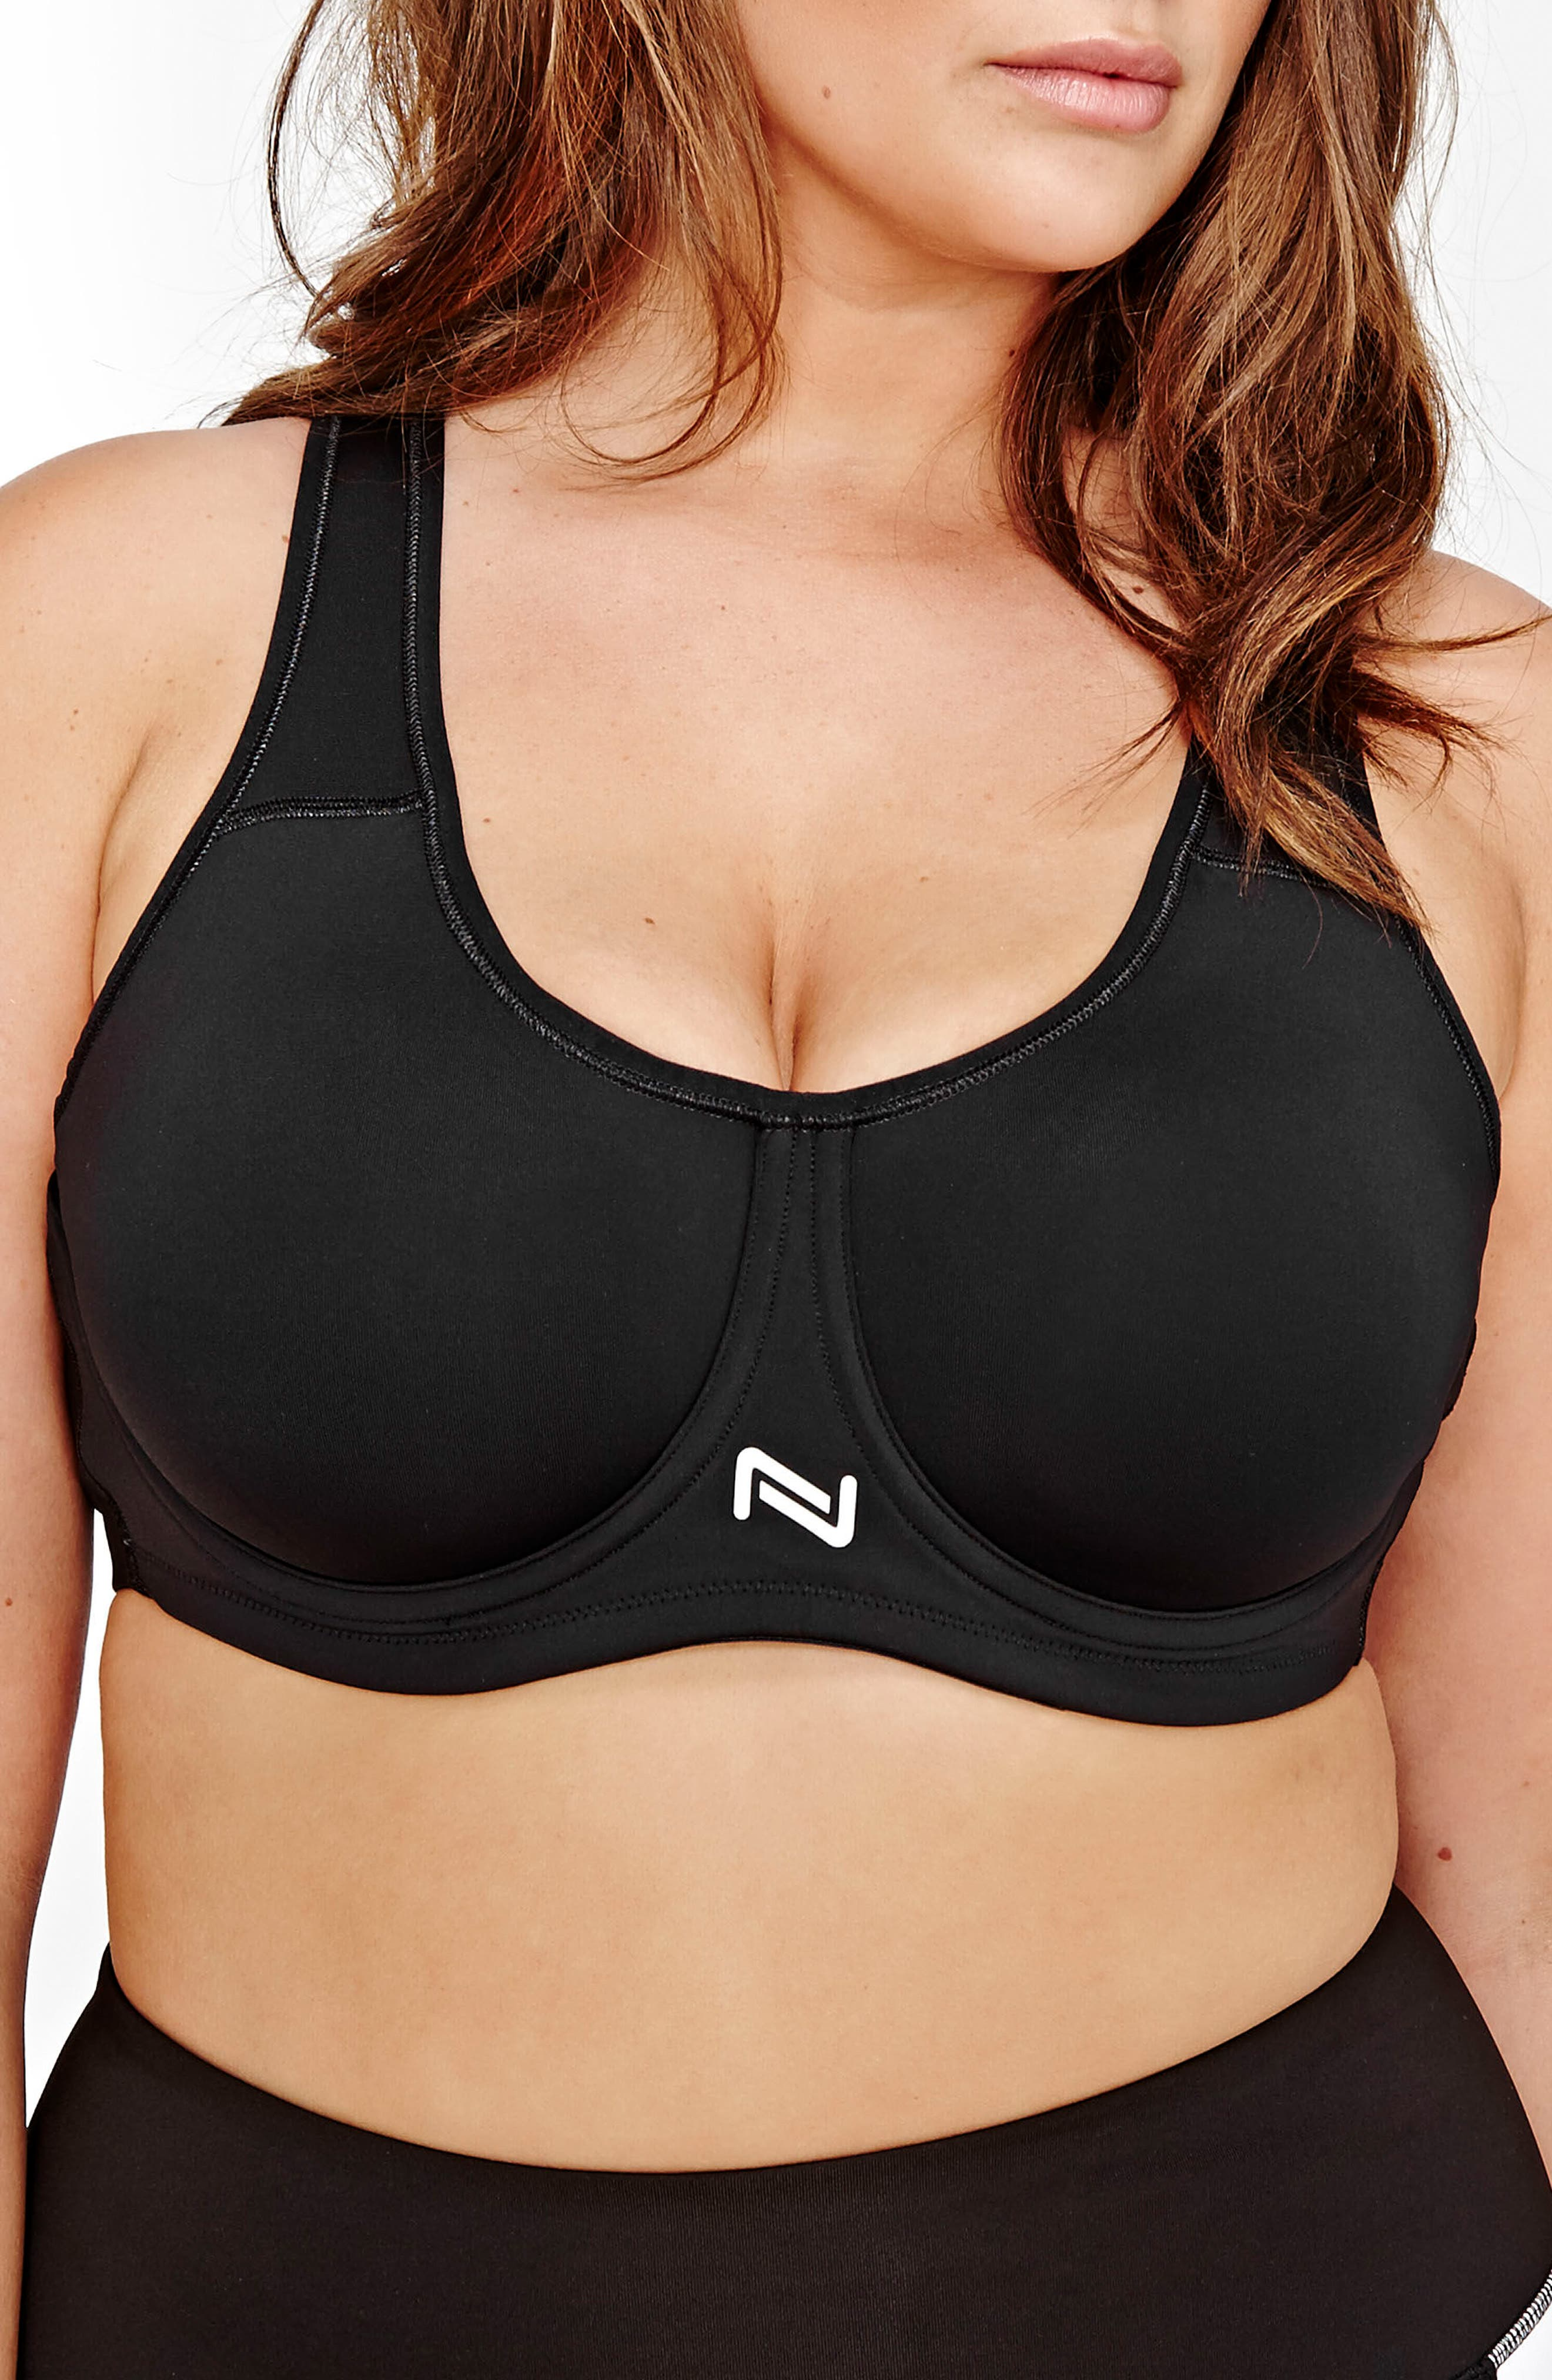 Main Image - Nola Underwire Sports Bra (Plus Size)